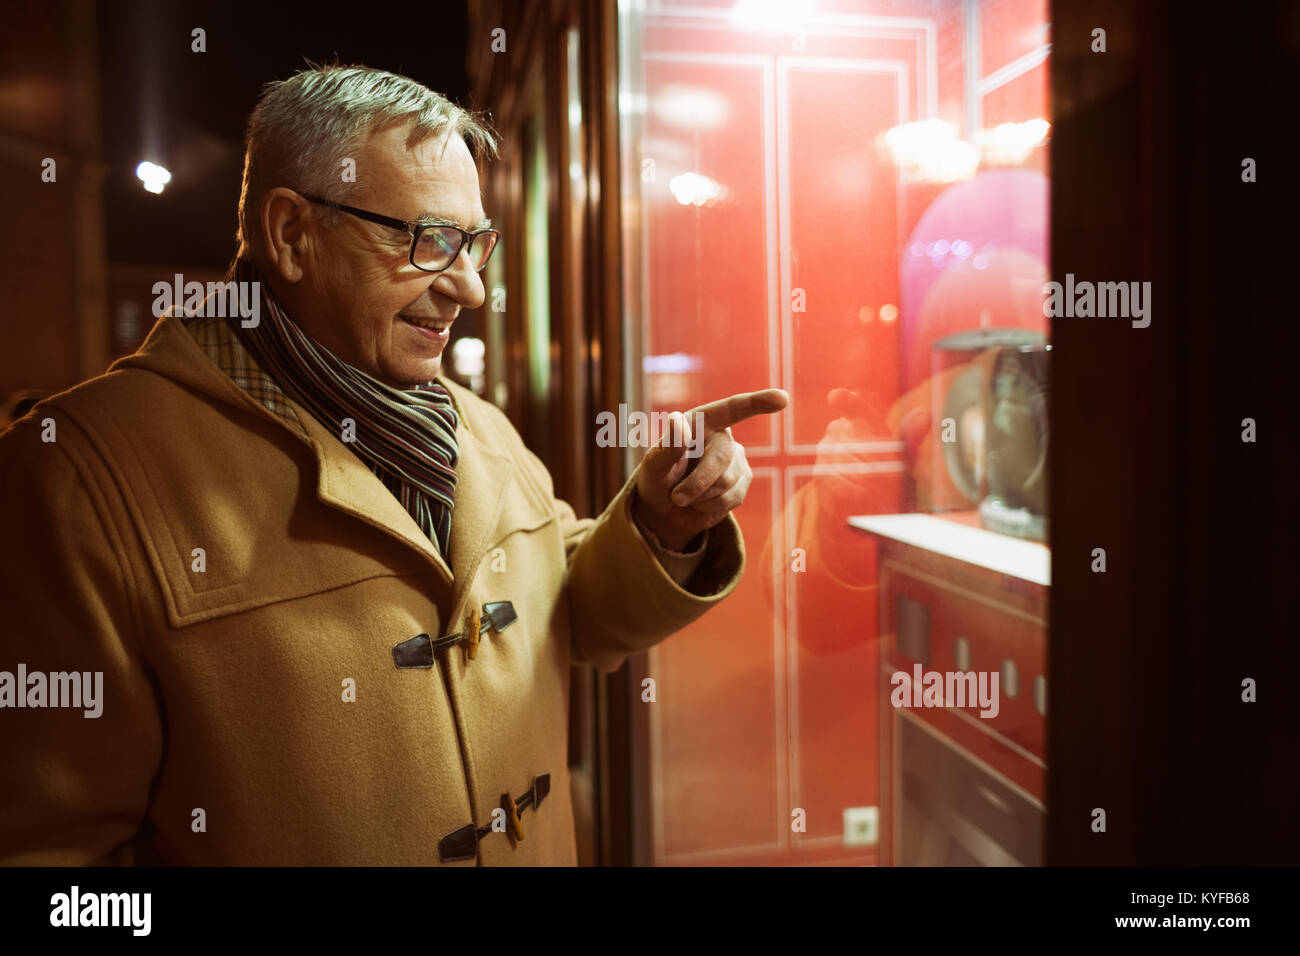 Senior man is shopping and looking at store front. - Stock Image